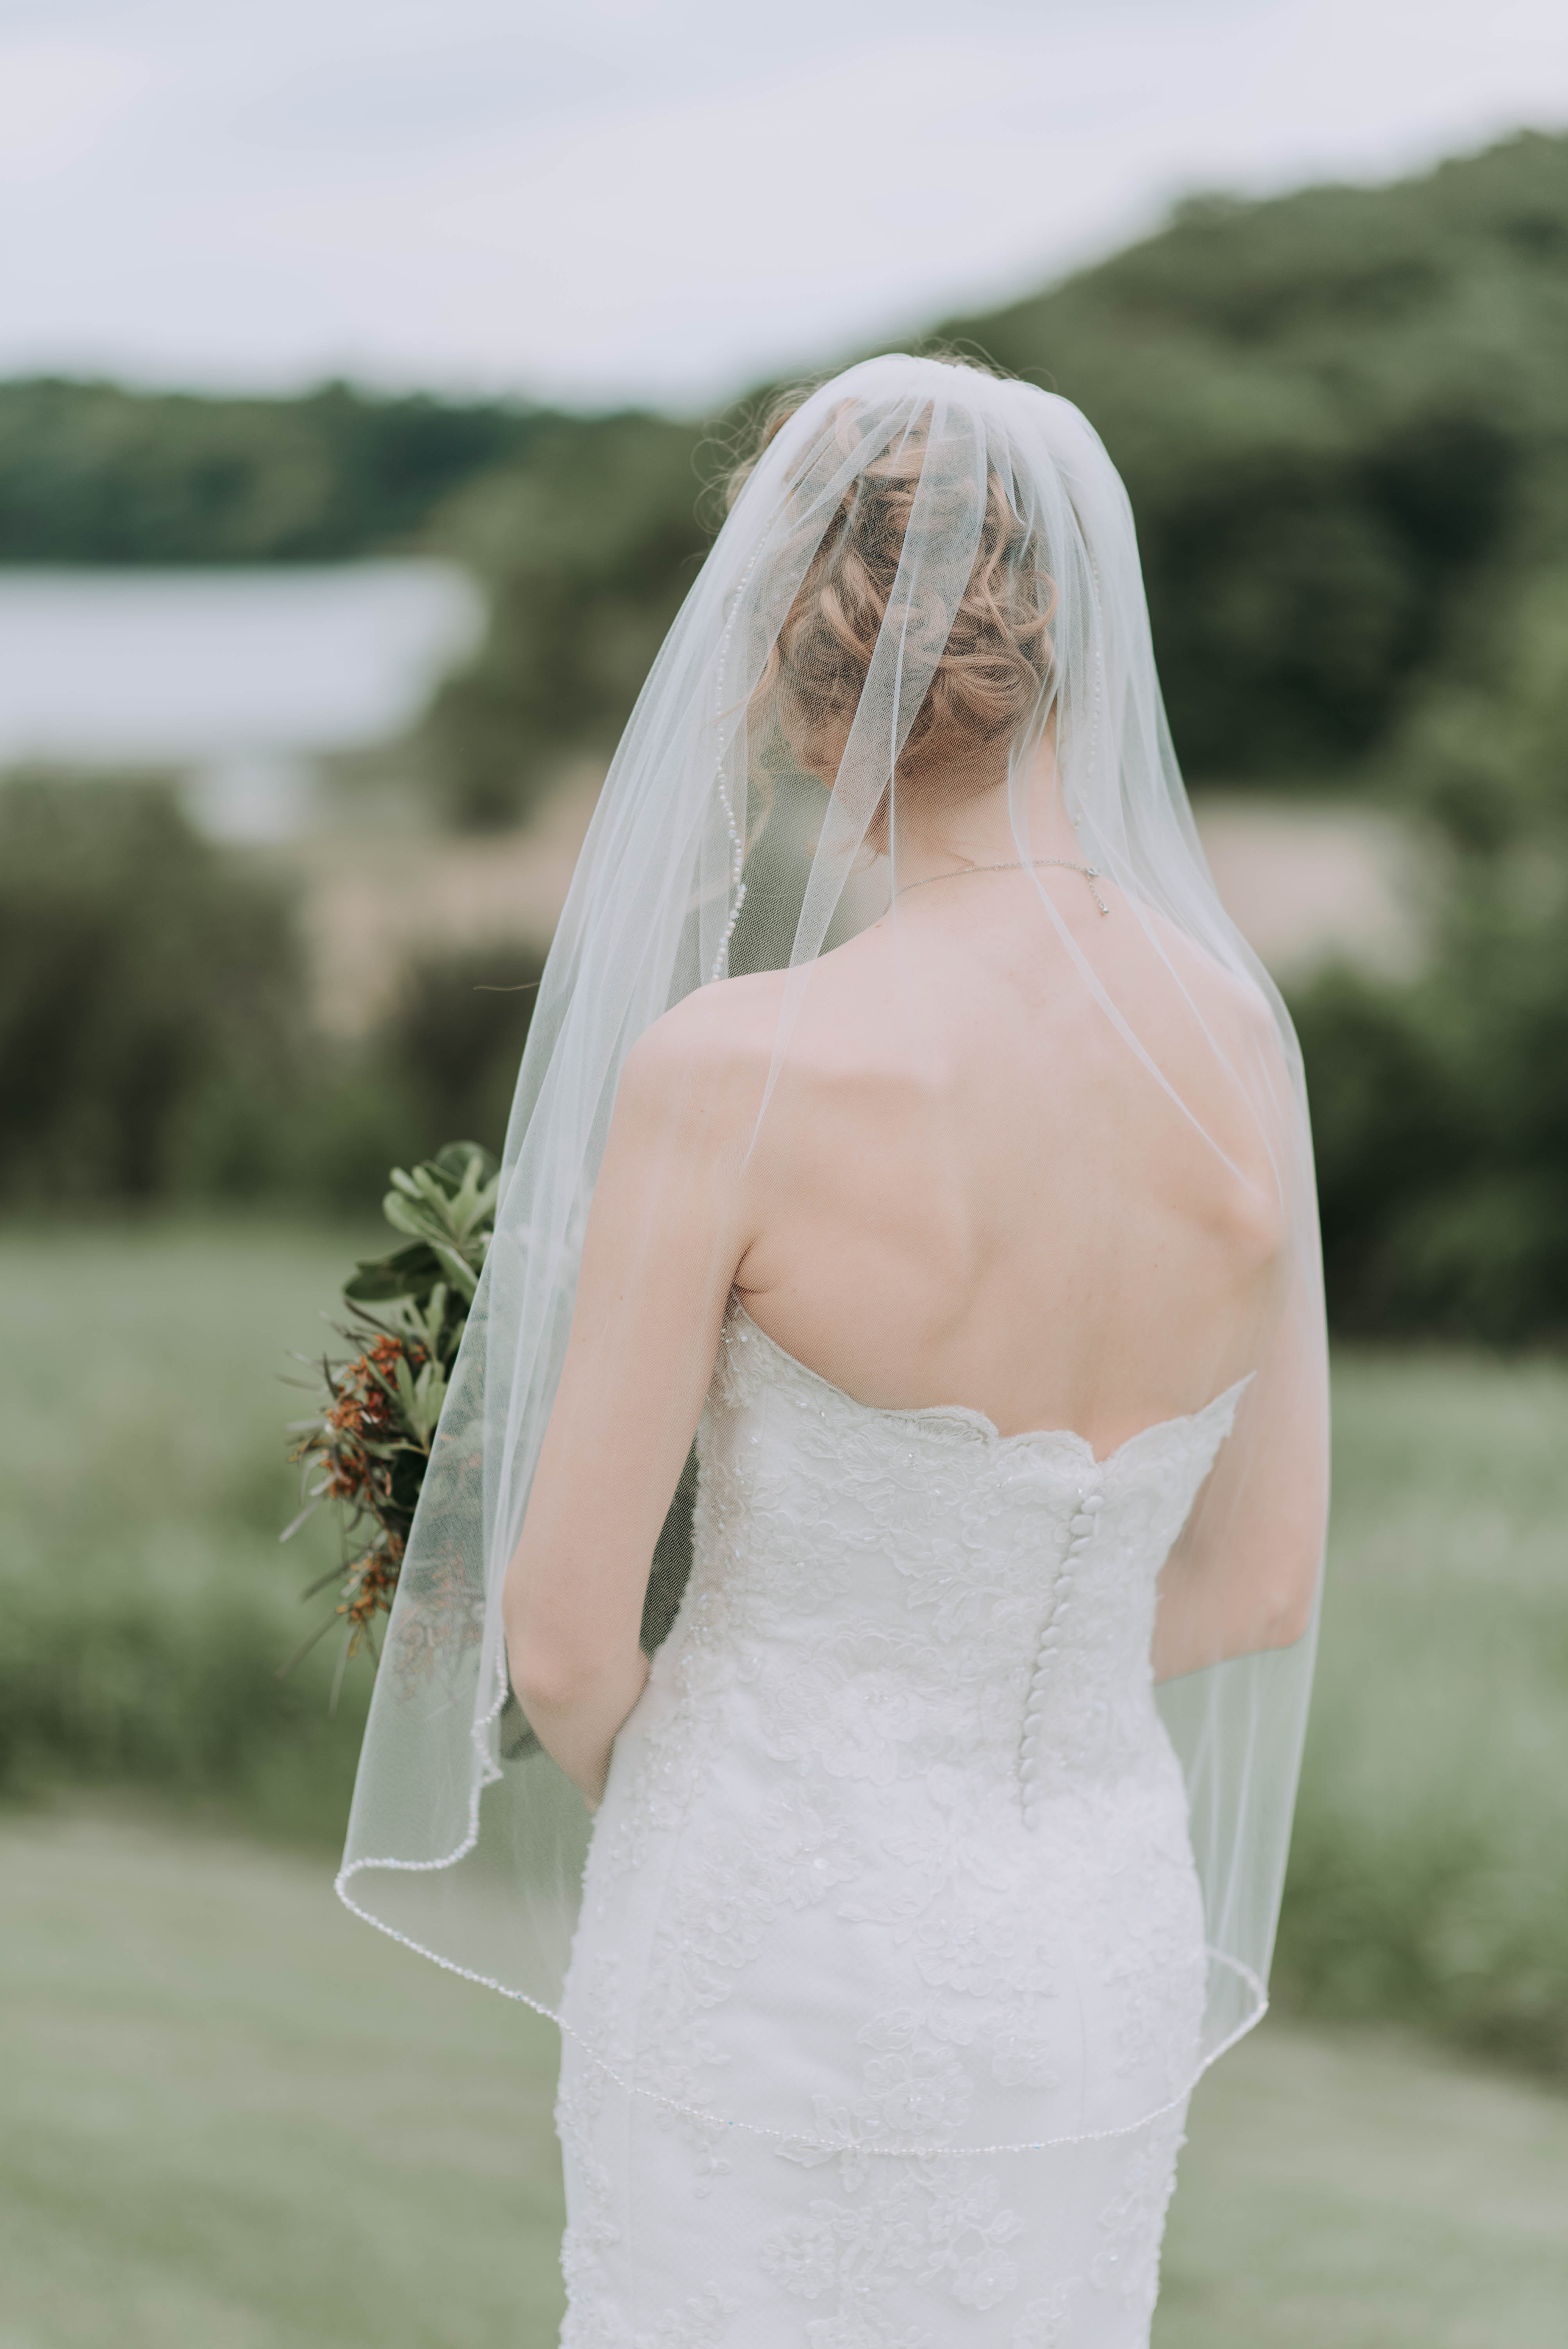 woman wearing white wedding dress holding bouquet